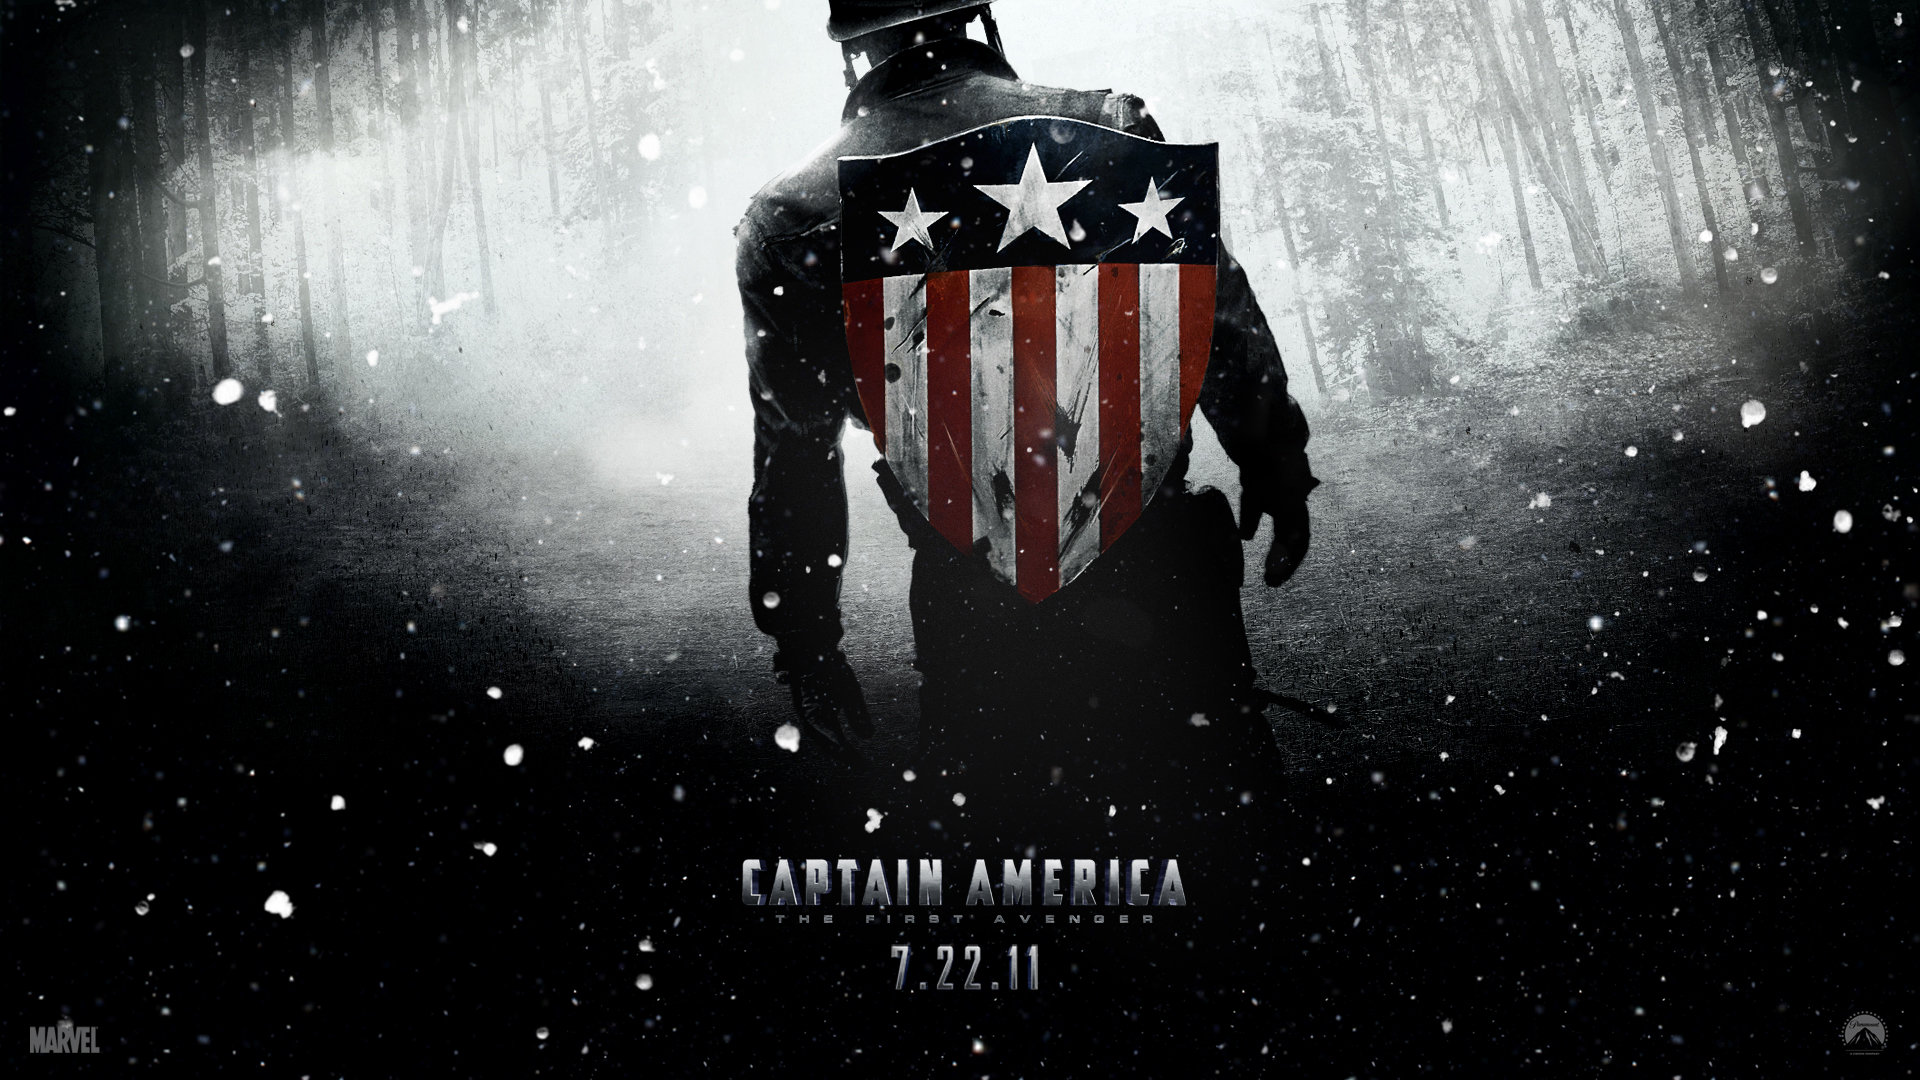 Captain America: The First Avenger wallpapers 1920x1080 ...